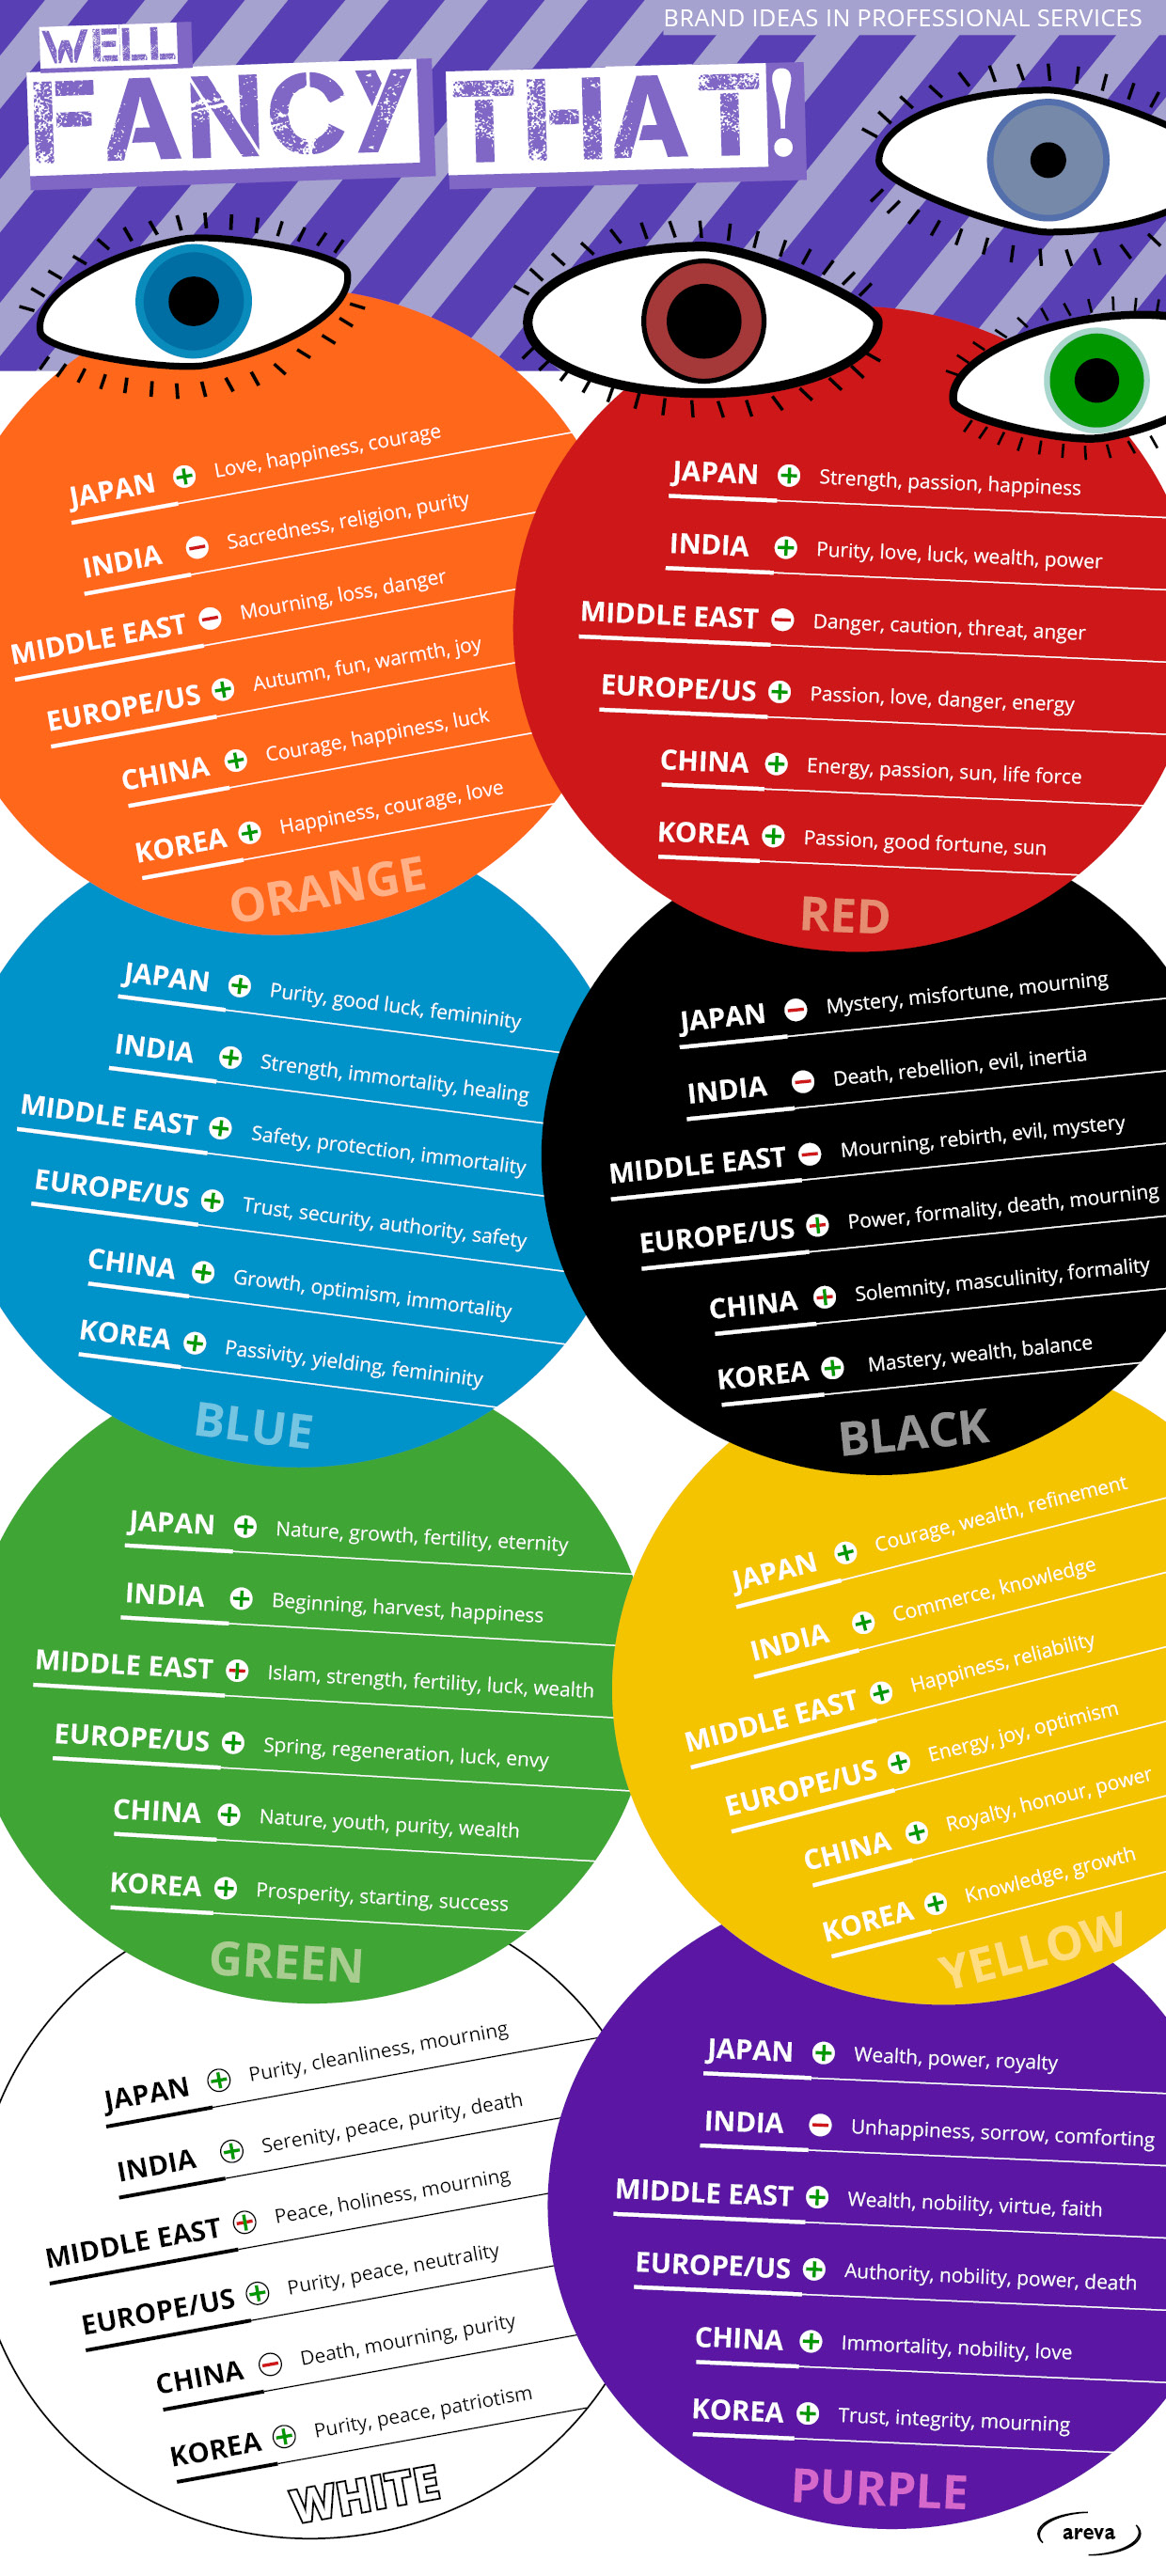 Marketing colours guide